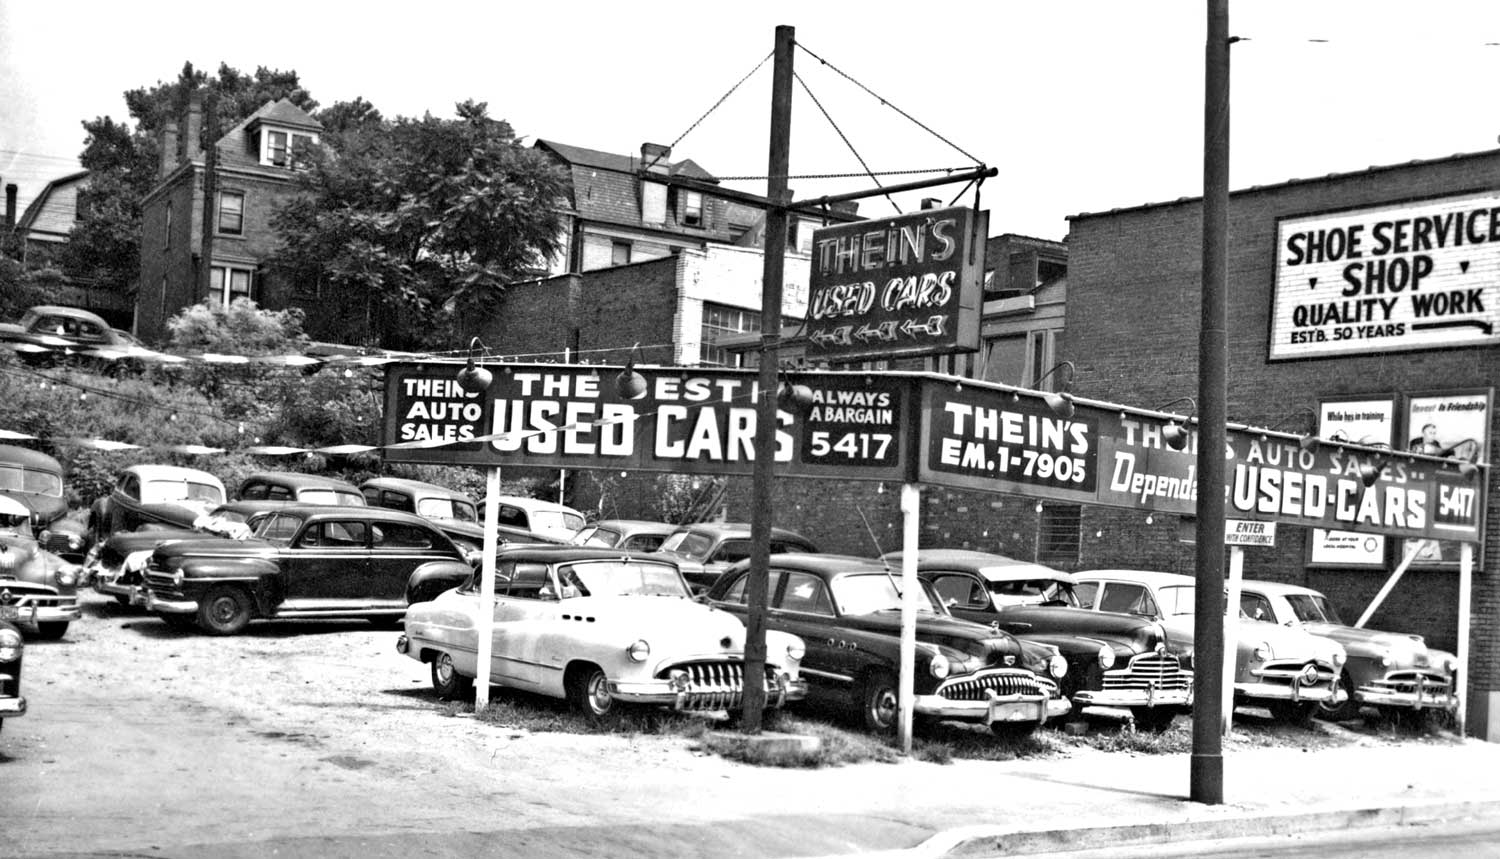 Auto Garage For Sale Pittsburgh: Thein's And Agnew's Used Car Lots